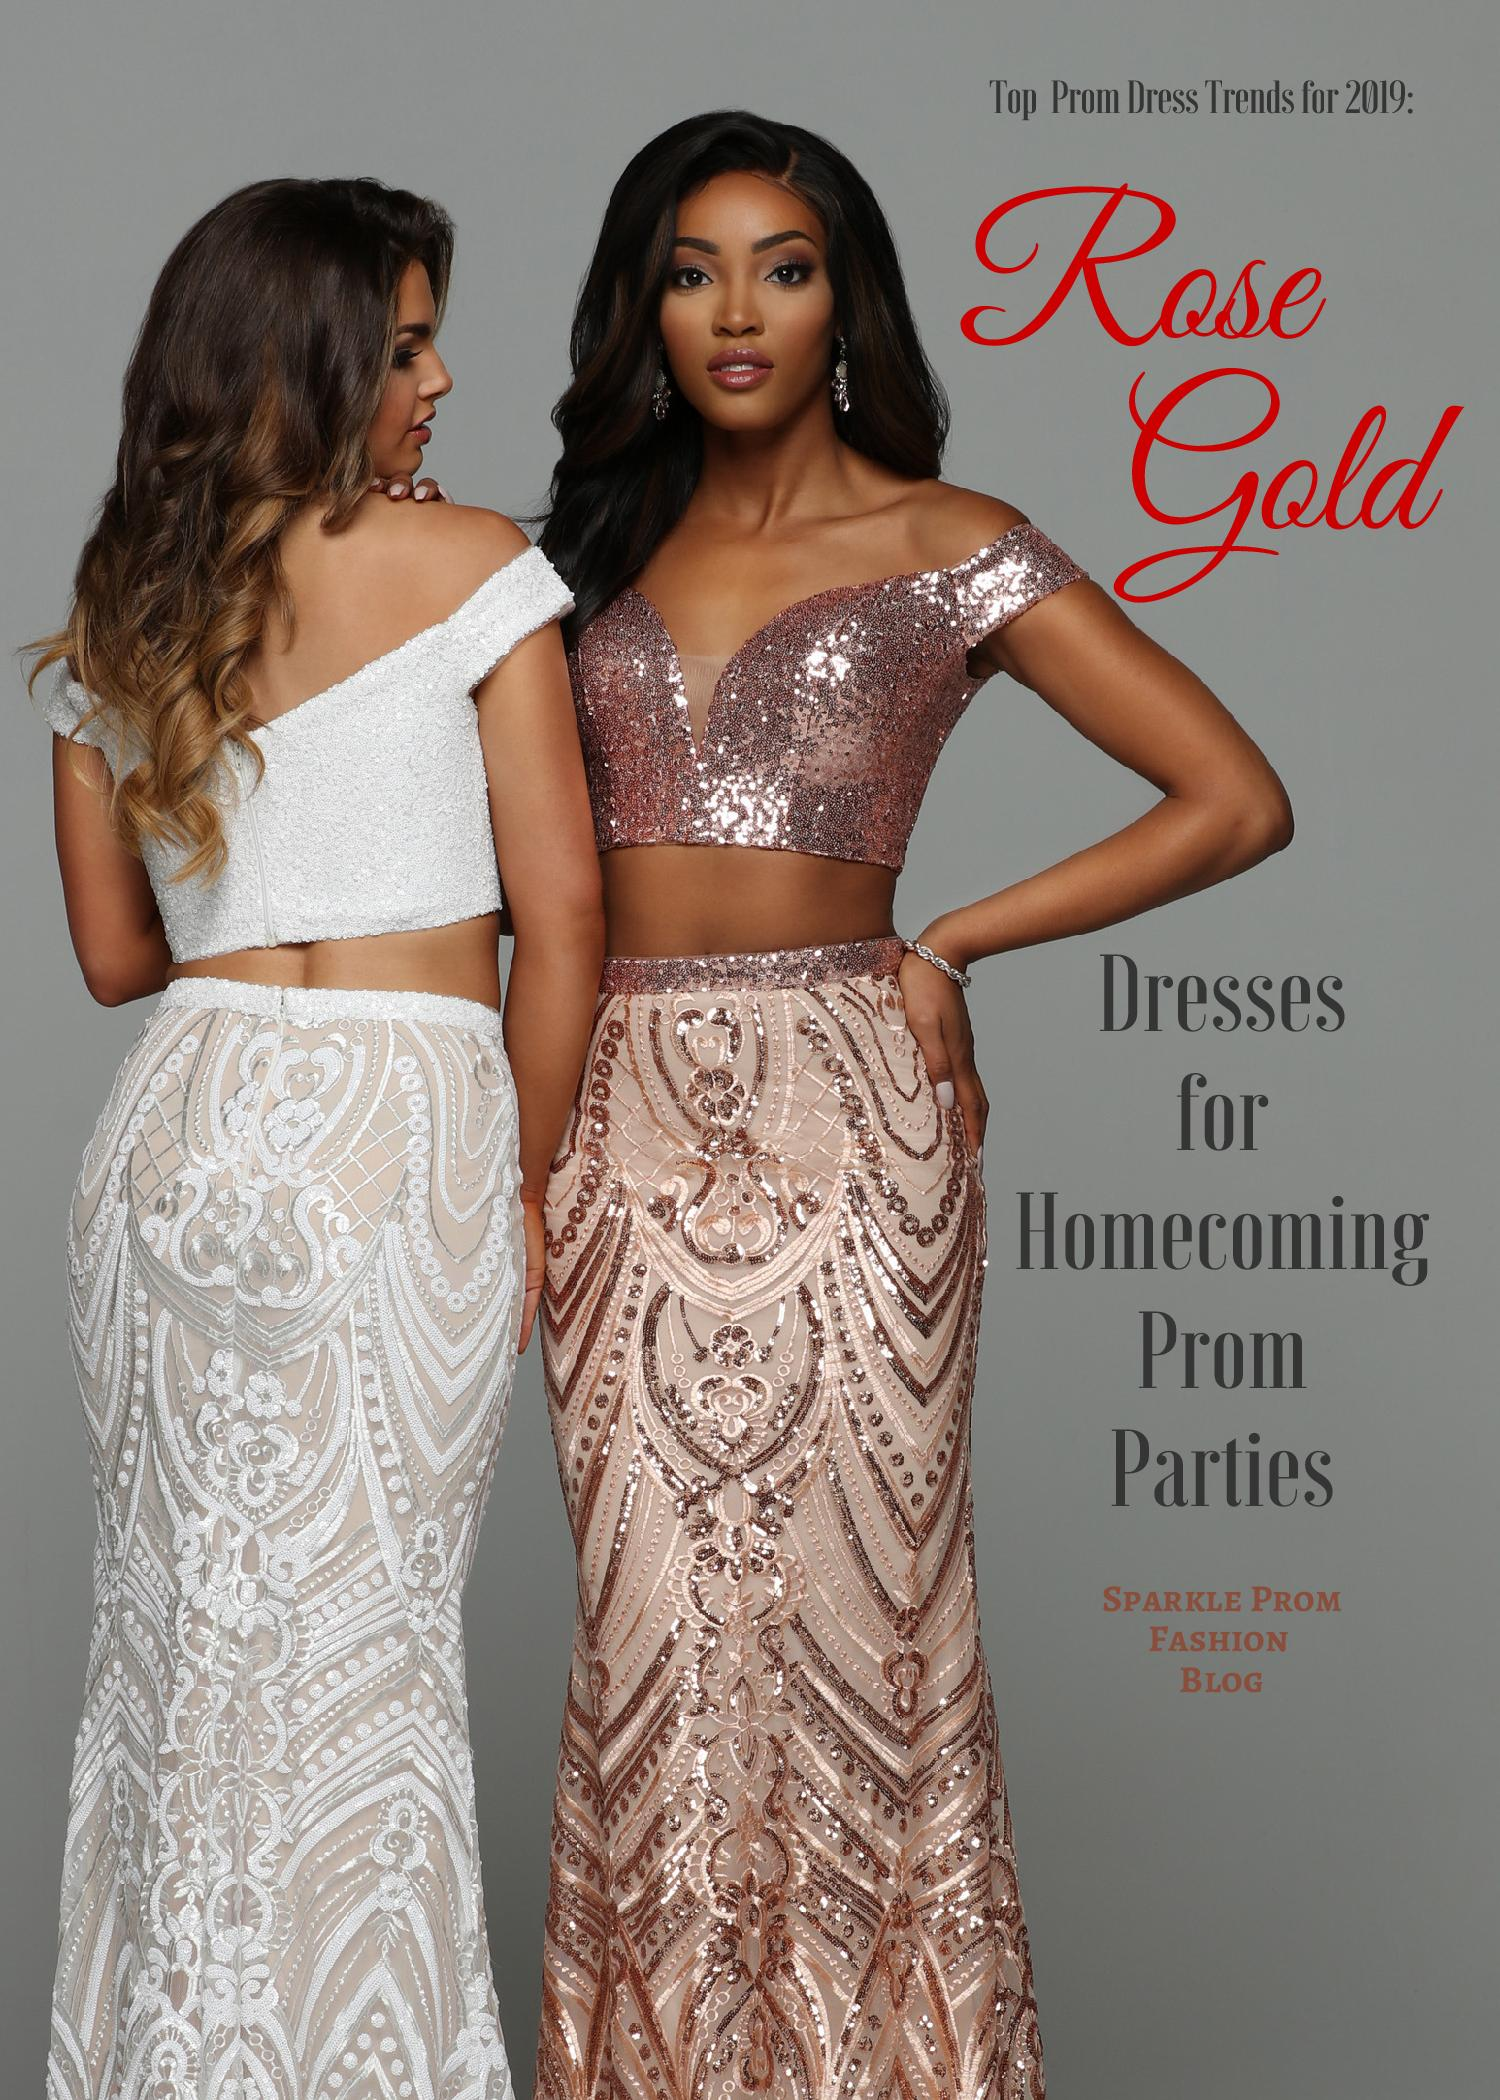 575b8ea4765b Top Prom Dress Trends for 2019 Rose Gold Prom Dresses – Sparkle Prom  Fashion Blog